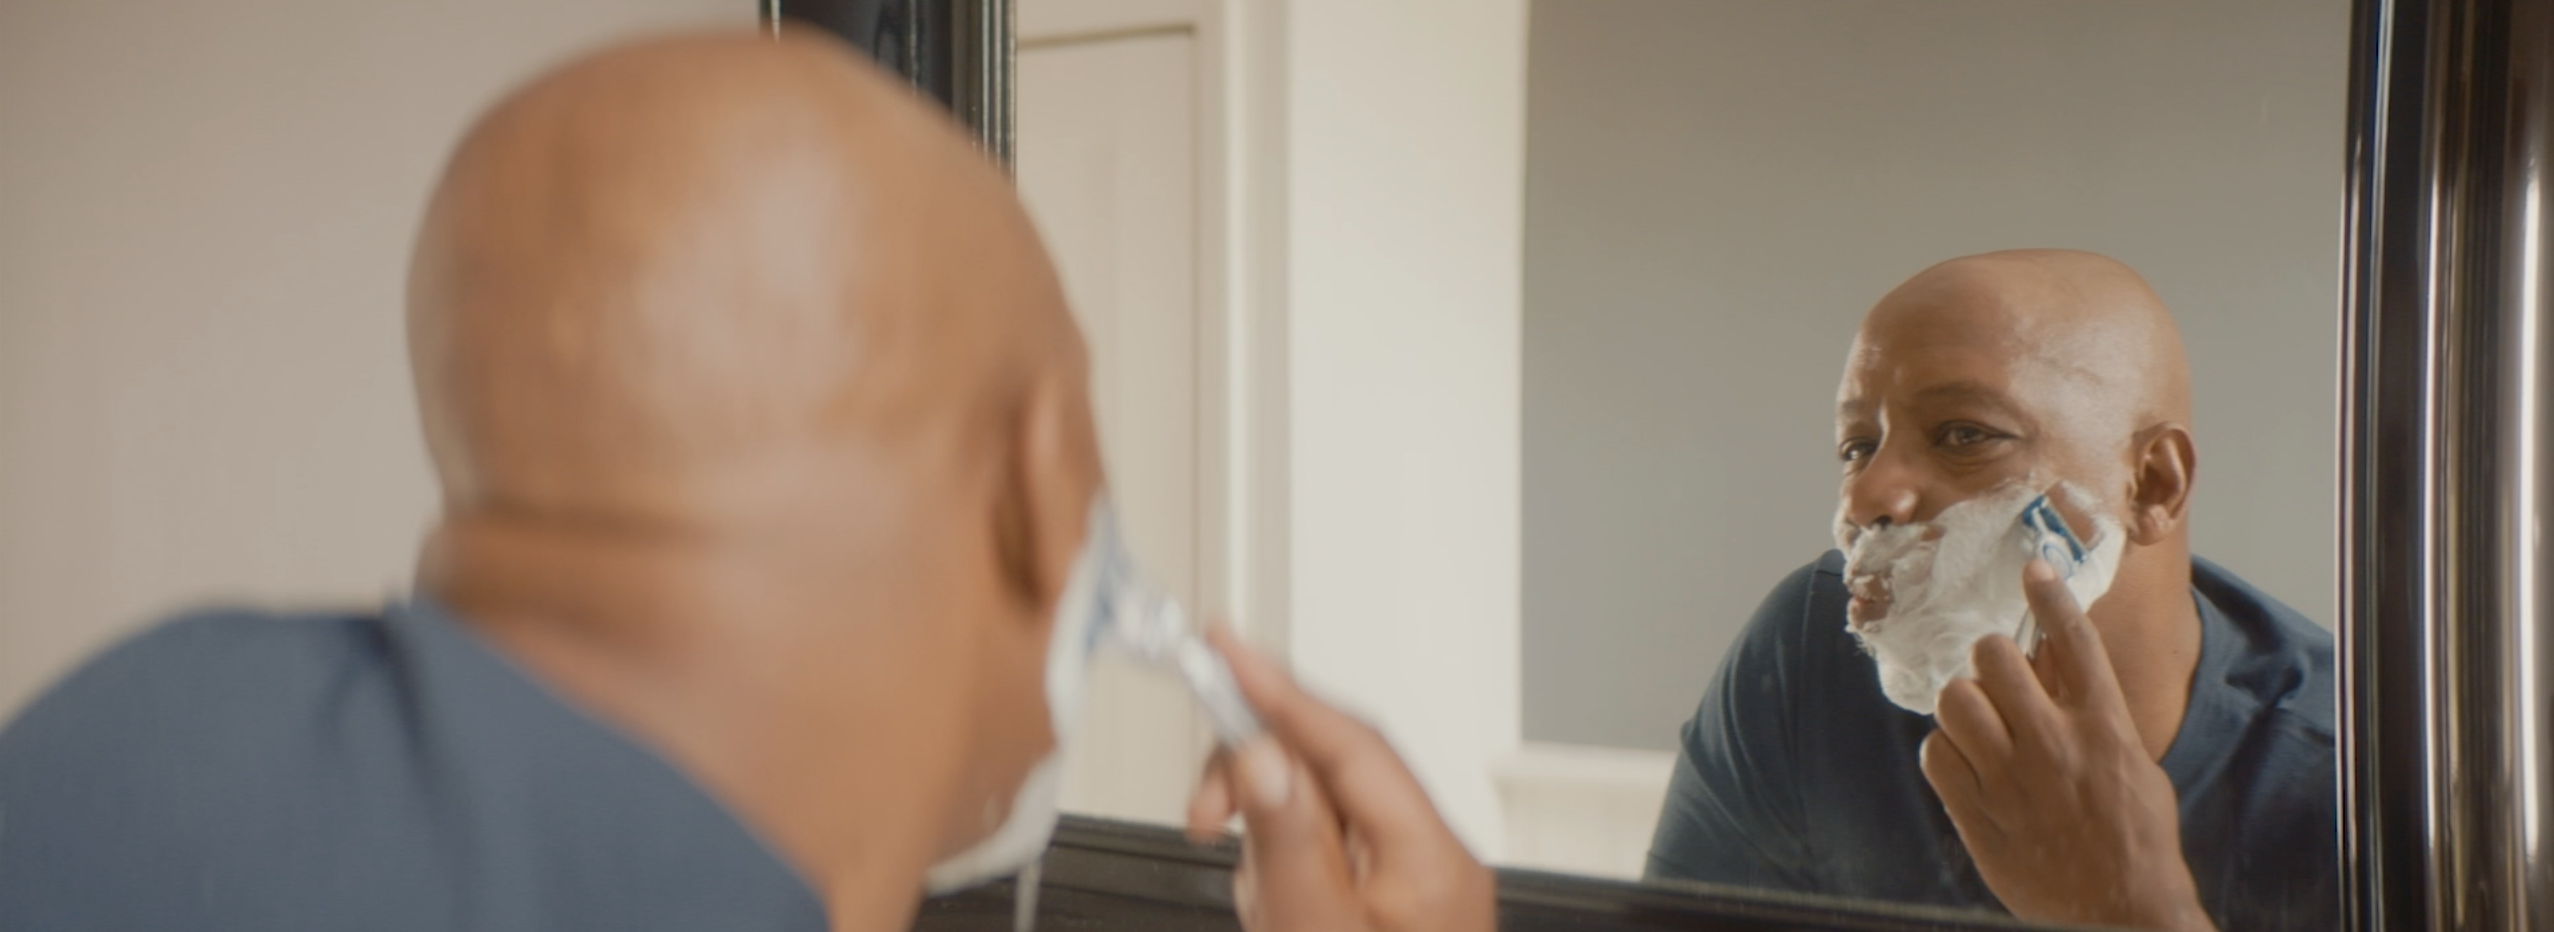 Ian Wright in a still from Gillette's 'A Letter To My Dad' campaign film